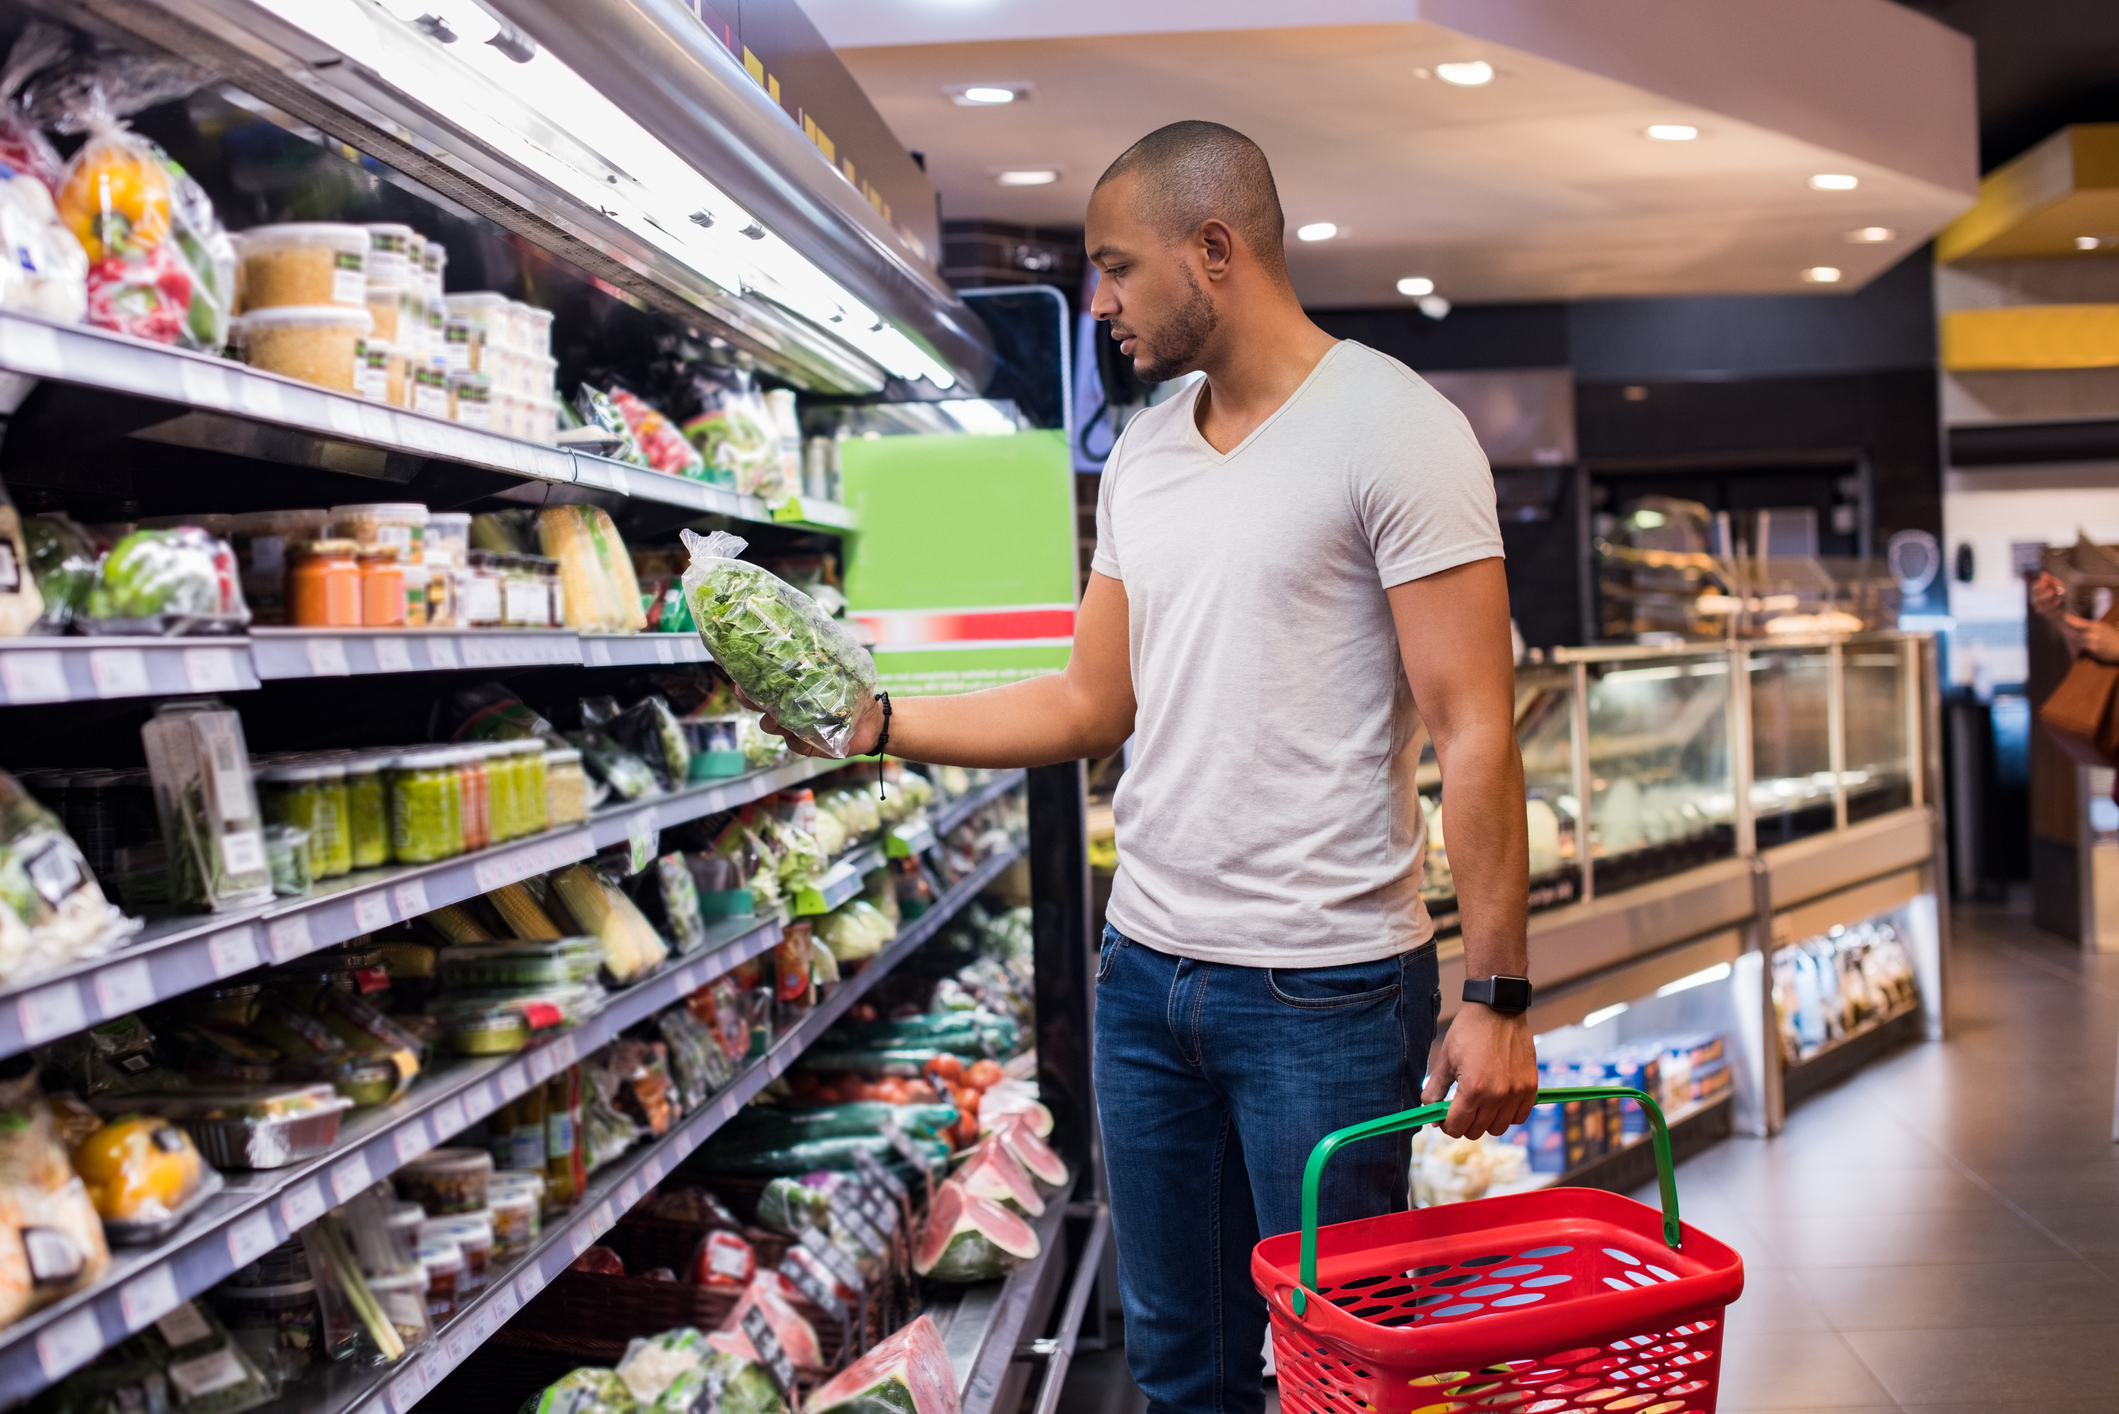 Young african man buying vegetables in grocery section at supermarket. Black man choose vegetables in the supermarket while holding grocery basket. Man shopping veggies at supermarket.